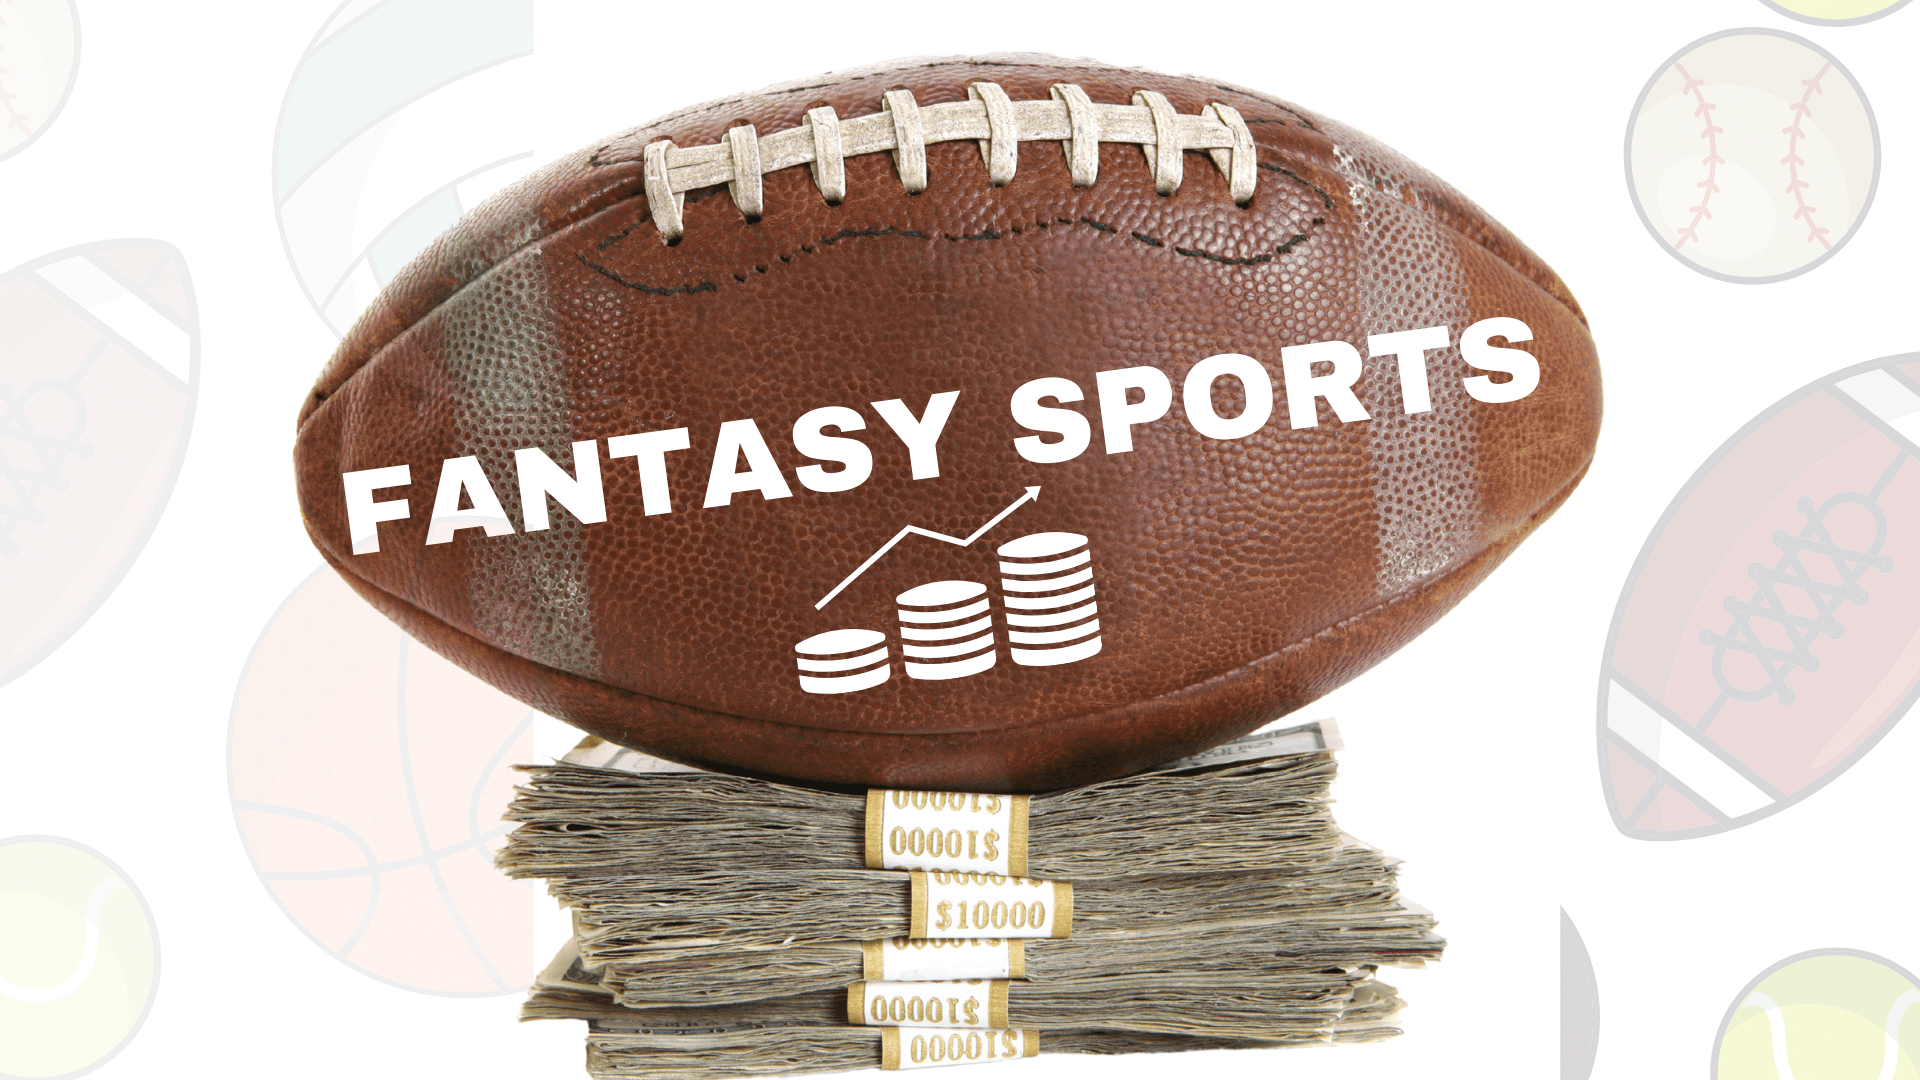 Fantasy sports app business